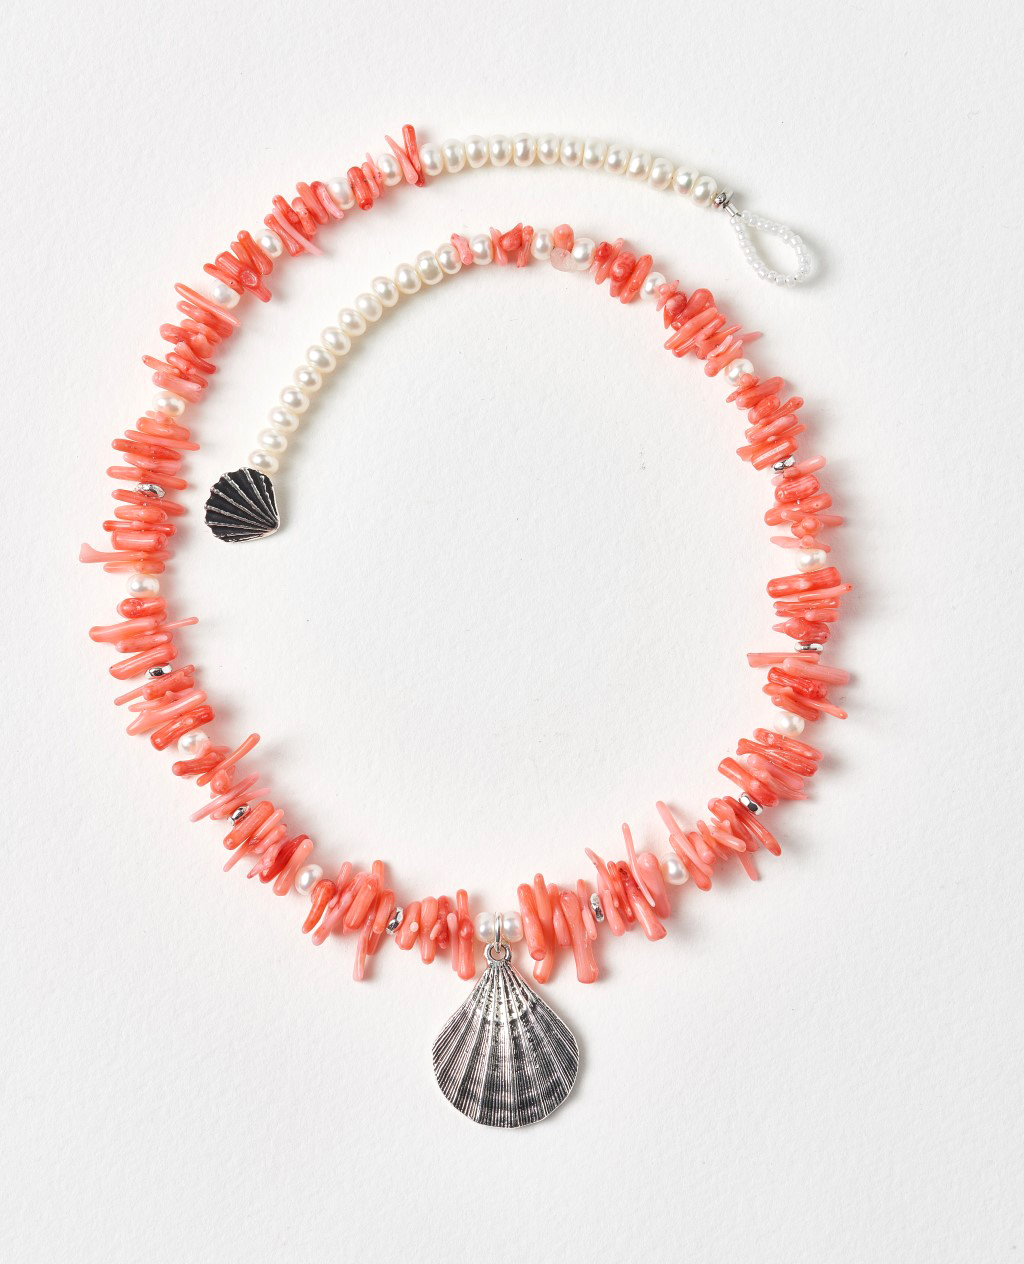 shell-coral-necklace3-1024px.jpg